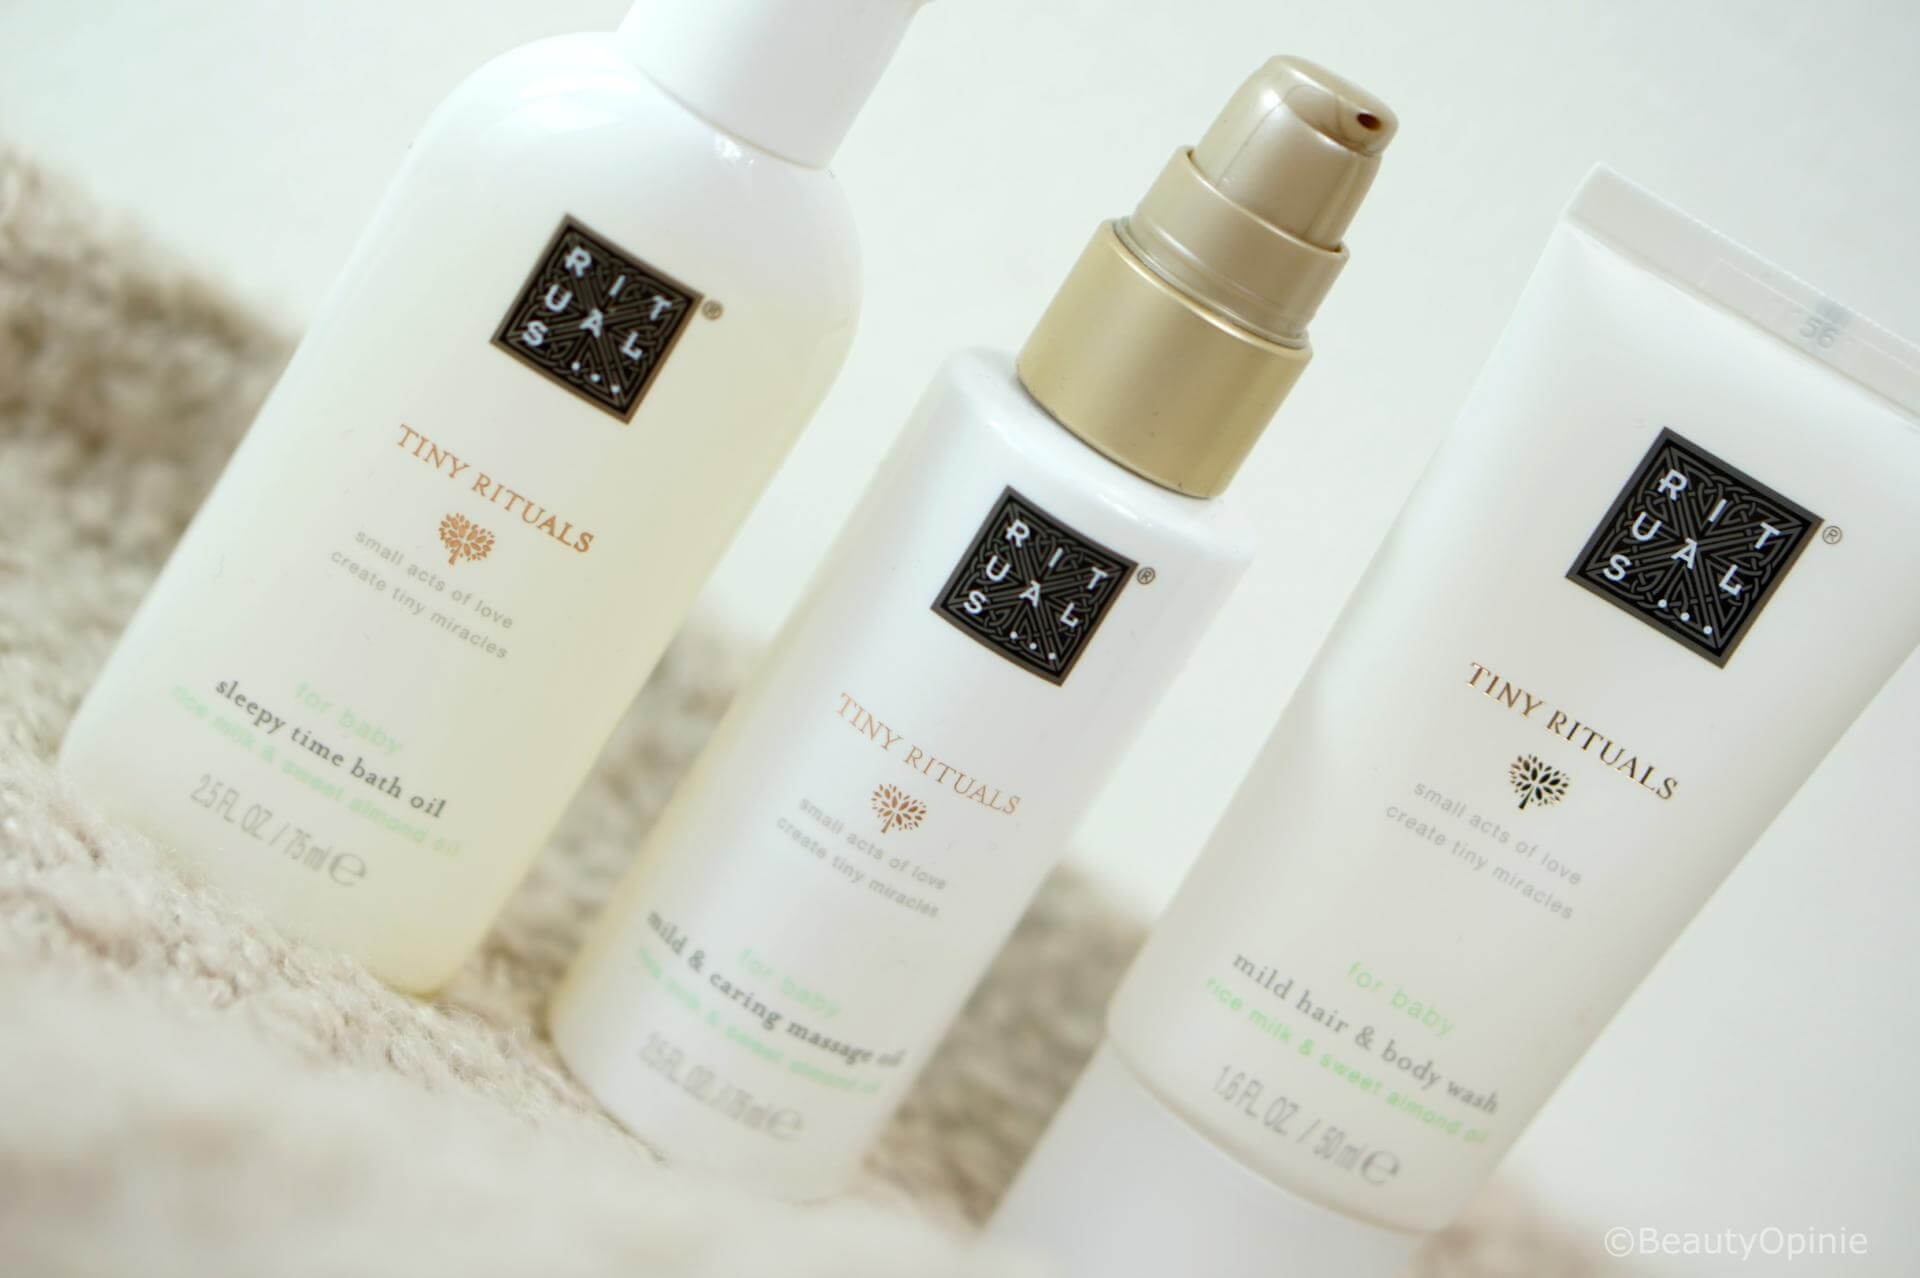 e43a9f867f301 BabyBeauty  Tiny Rituals collectie voor baby   mama - BeautyOpinie